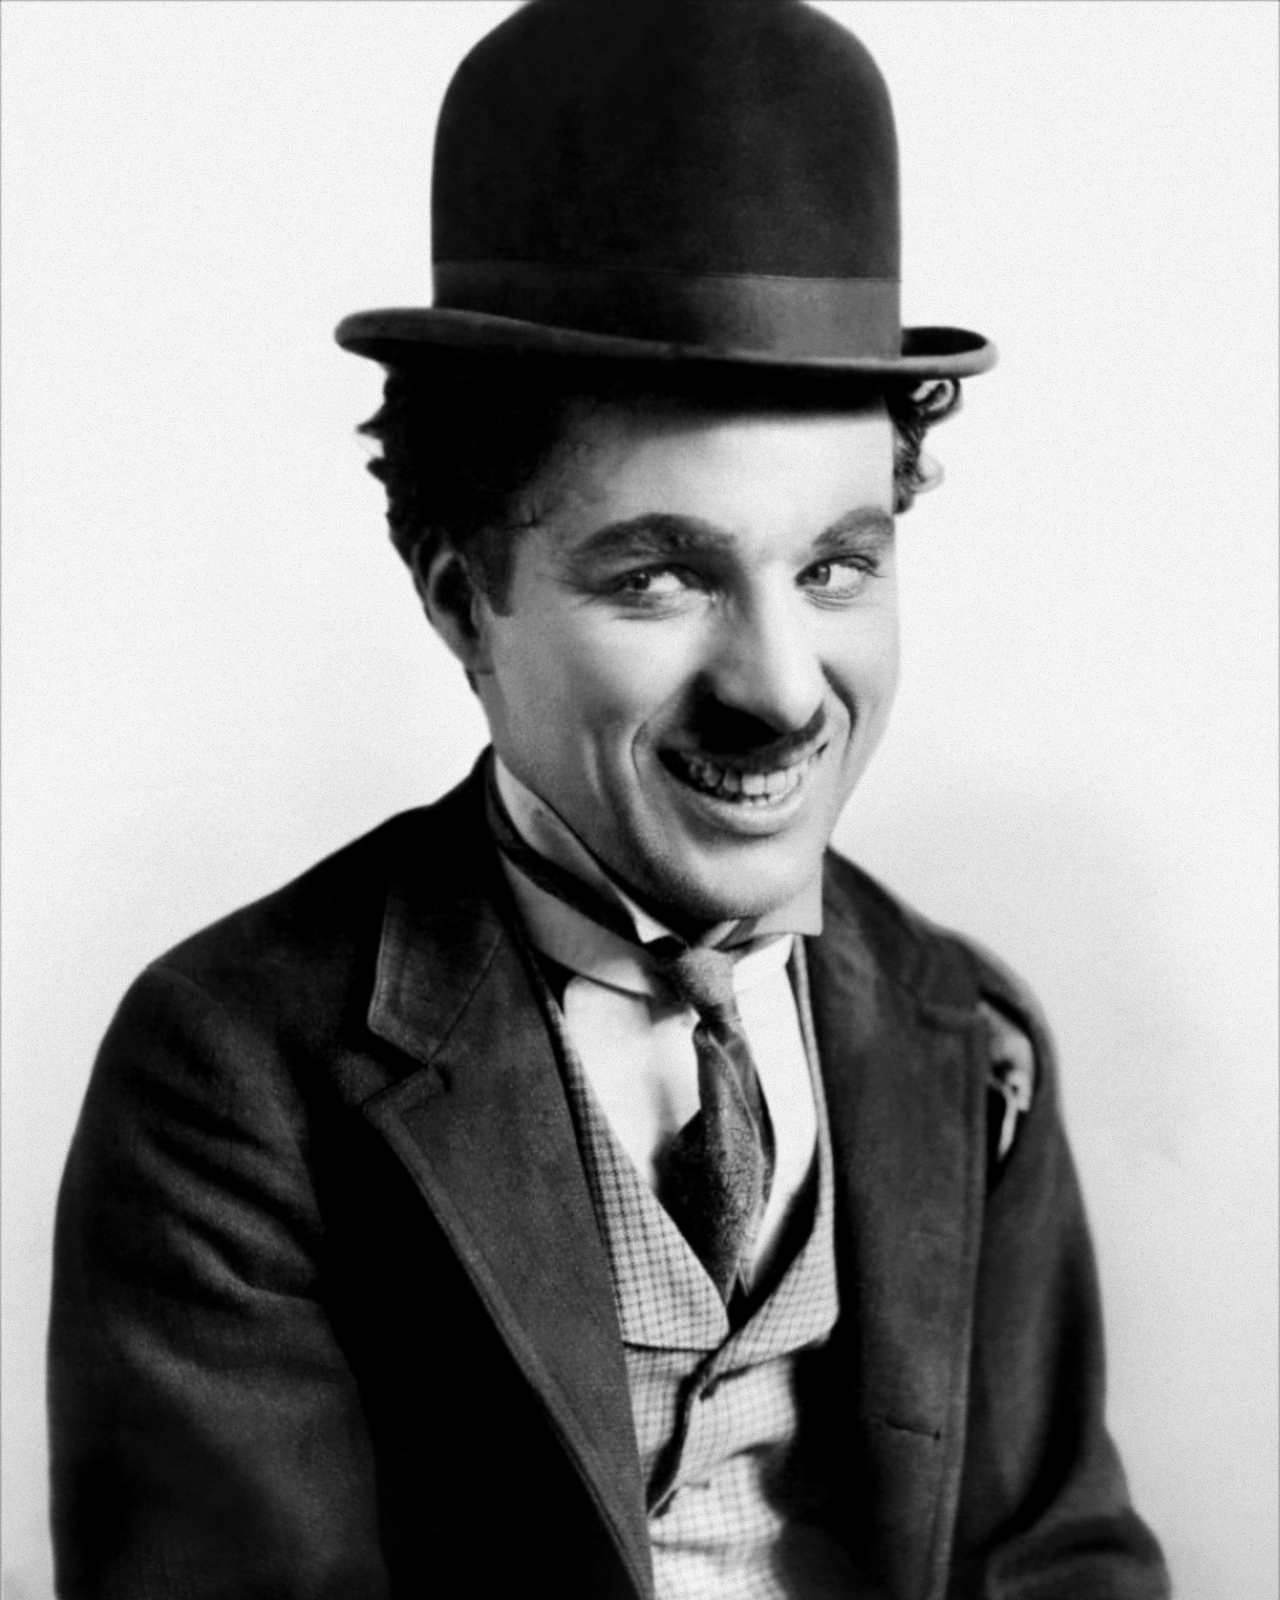 http://upload.wikimedia.org/wikipedia/commons/0/00/Charlie_Chaplin.jpg